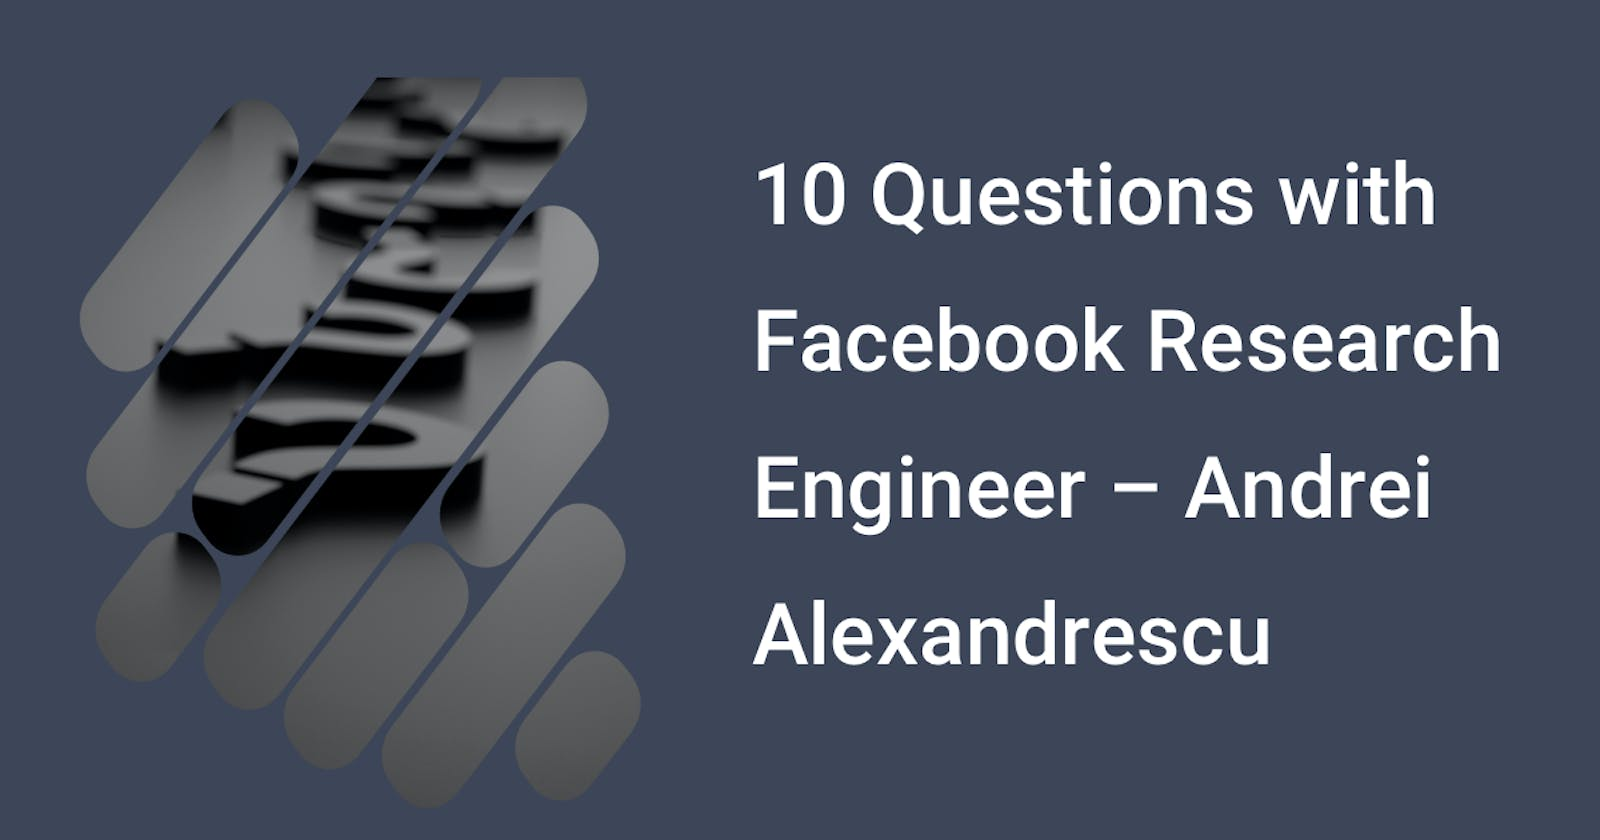 10 Questions with Facebook Research Engineer – Andrei Alexandrescu